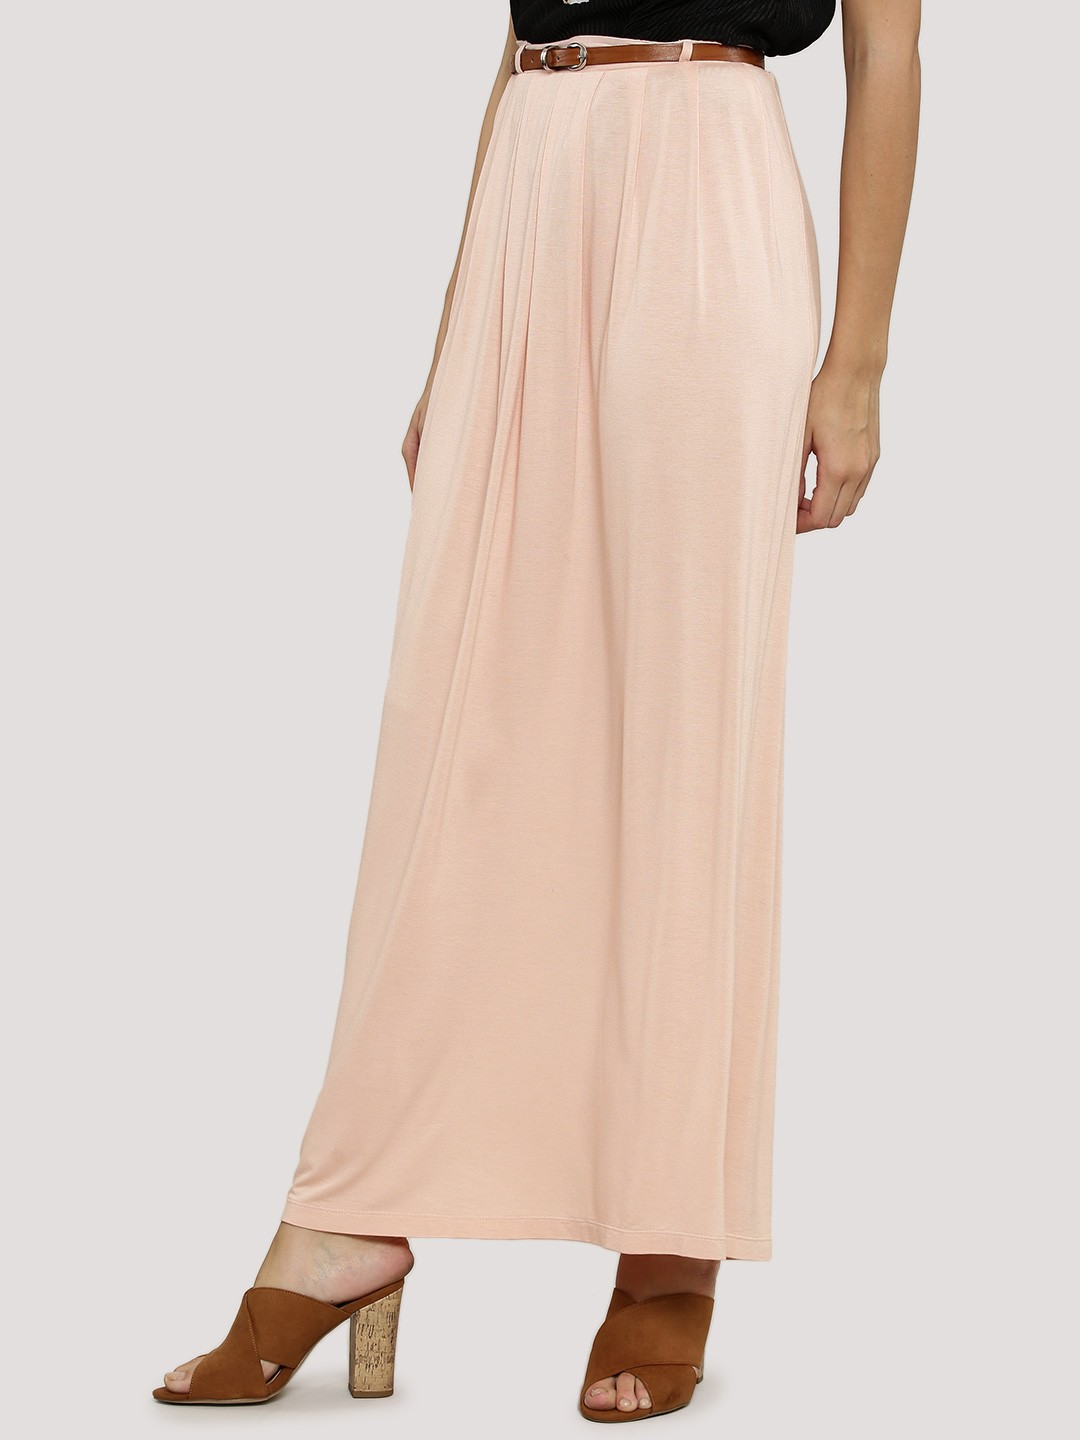 Buy KOOVS Belted Maxi Skirt For Women - Women's Pink Maxi Skirts ...